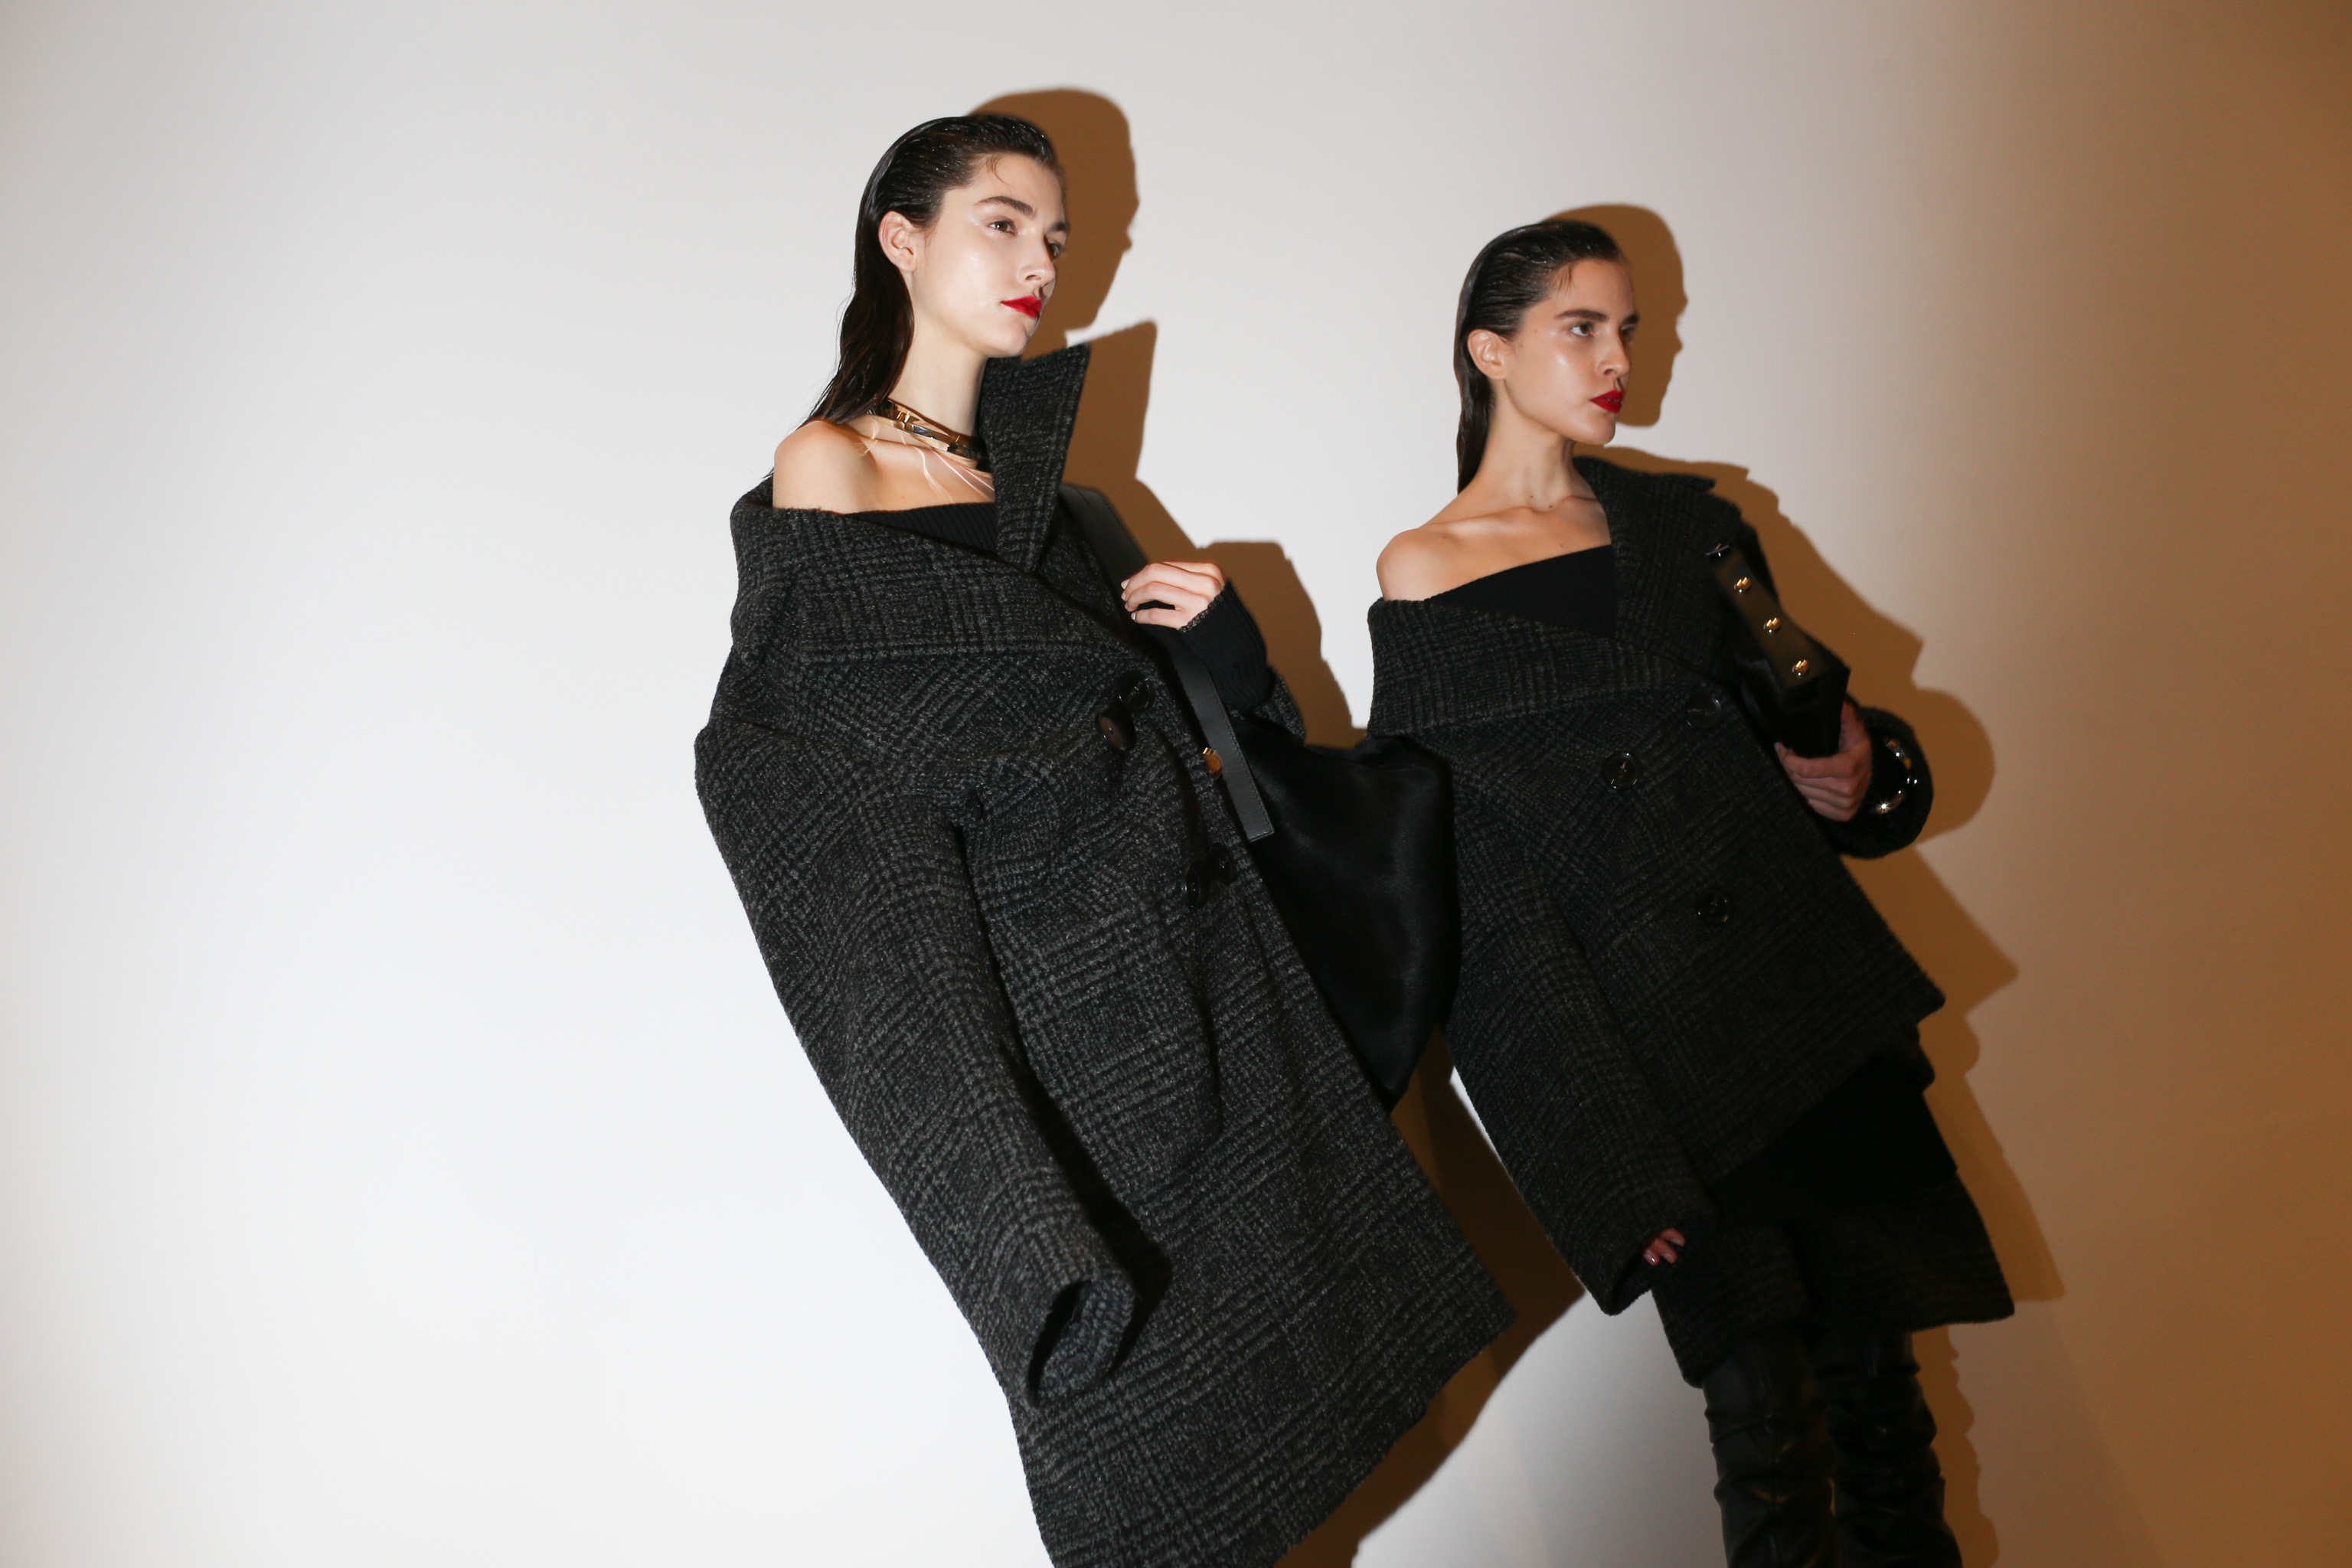 Backstage at Proenza Schouler RTW Fall 2020